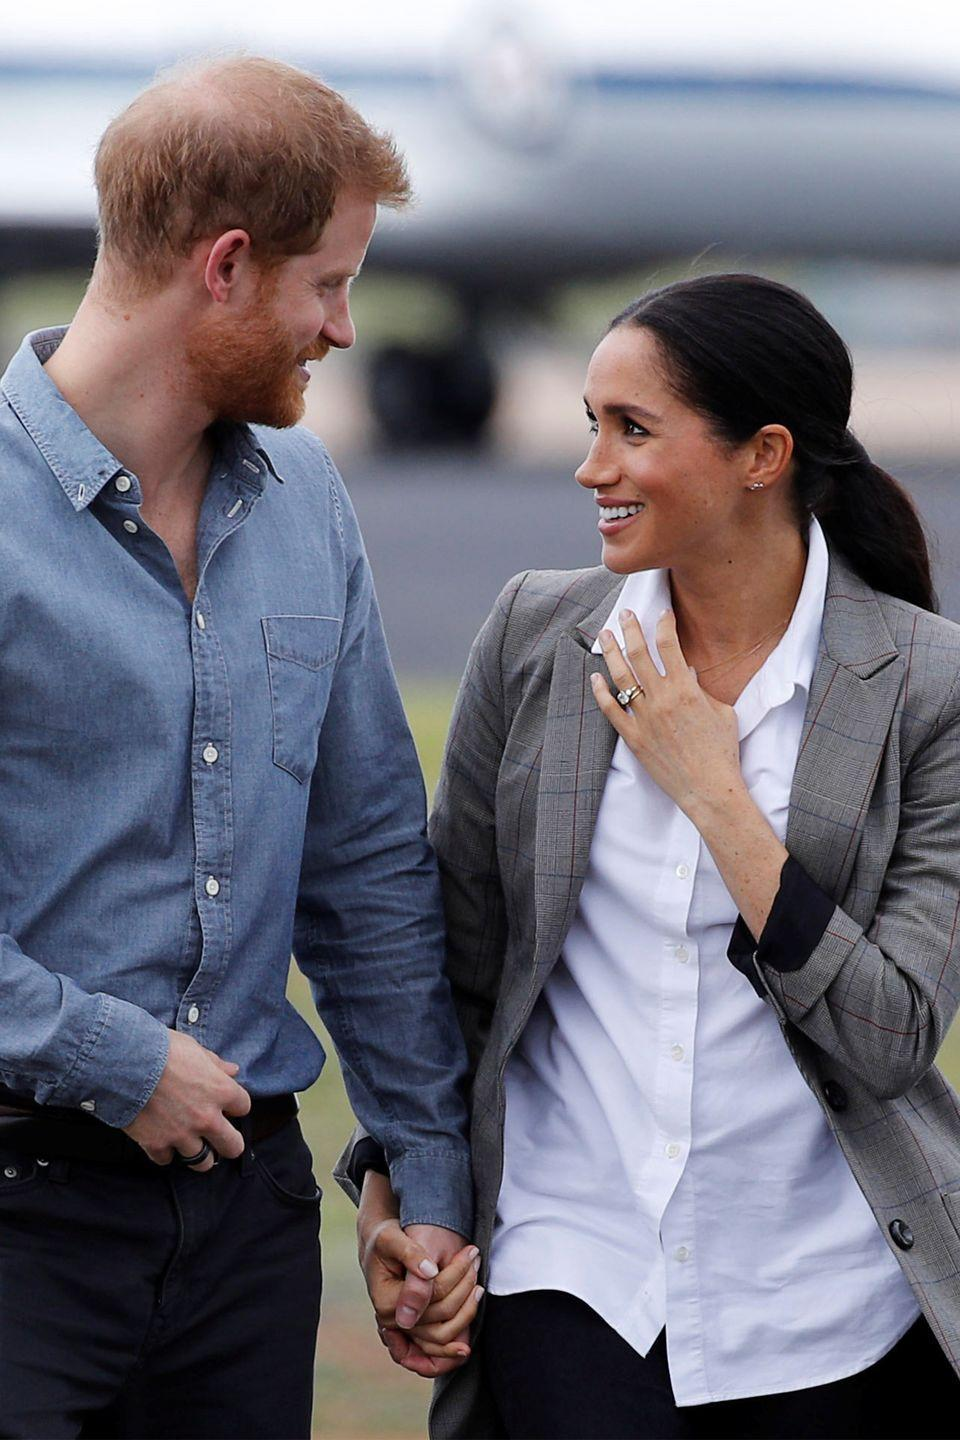 "<p>As they kicked off their official royal tour of Australia, Fiji, Tonga and New Zealand, Meghan and Harry held each other close at Dubbo Airport. This was also right after they announced that they were expecting their <a href=""https://www.harpersbazaar.com/celebrity/latest/a23801934/meghan-markle-prince-harry-royal-baby-news-due-date-name-gender-rumors/"" rel=""nofollow noopener"" target=""_blank"" data-ylk=""slk:first child"" class=""link rapid-noclick-resp"">first child</a>. </p>"